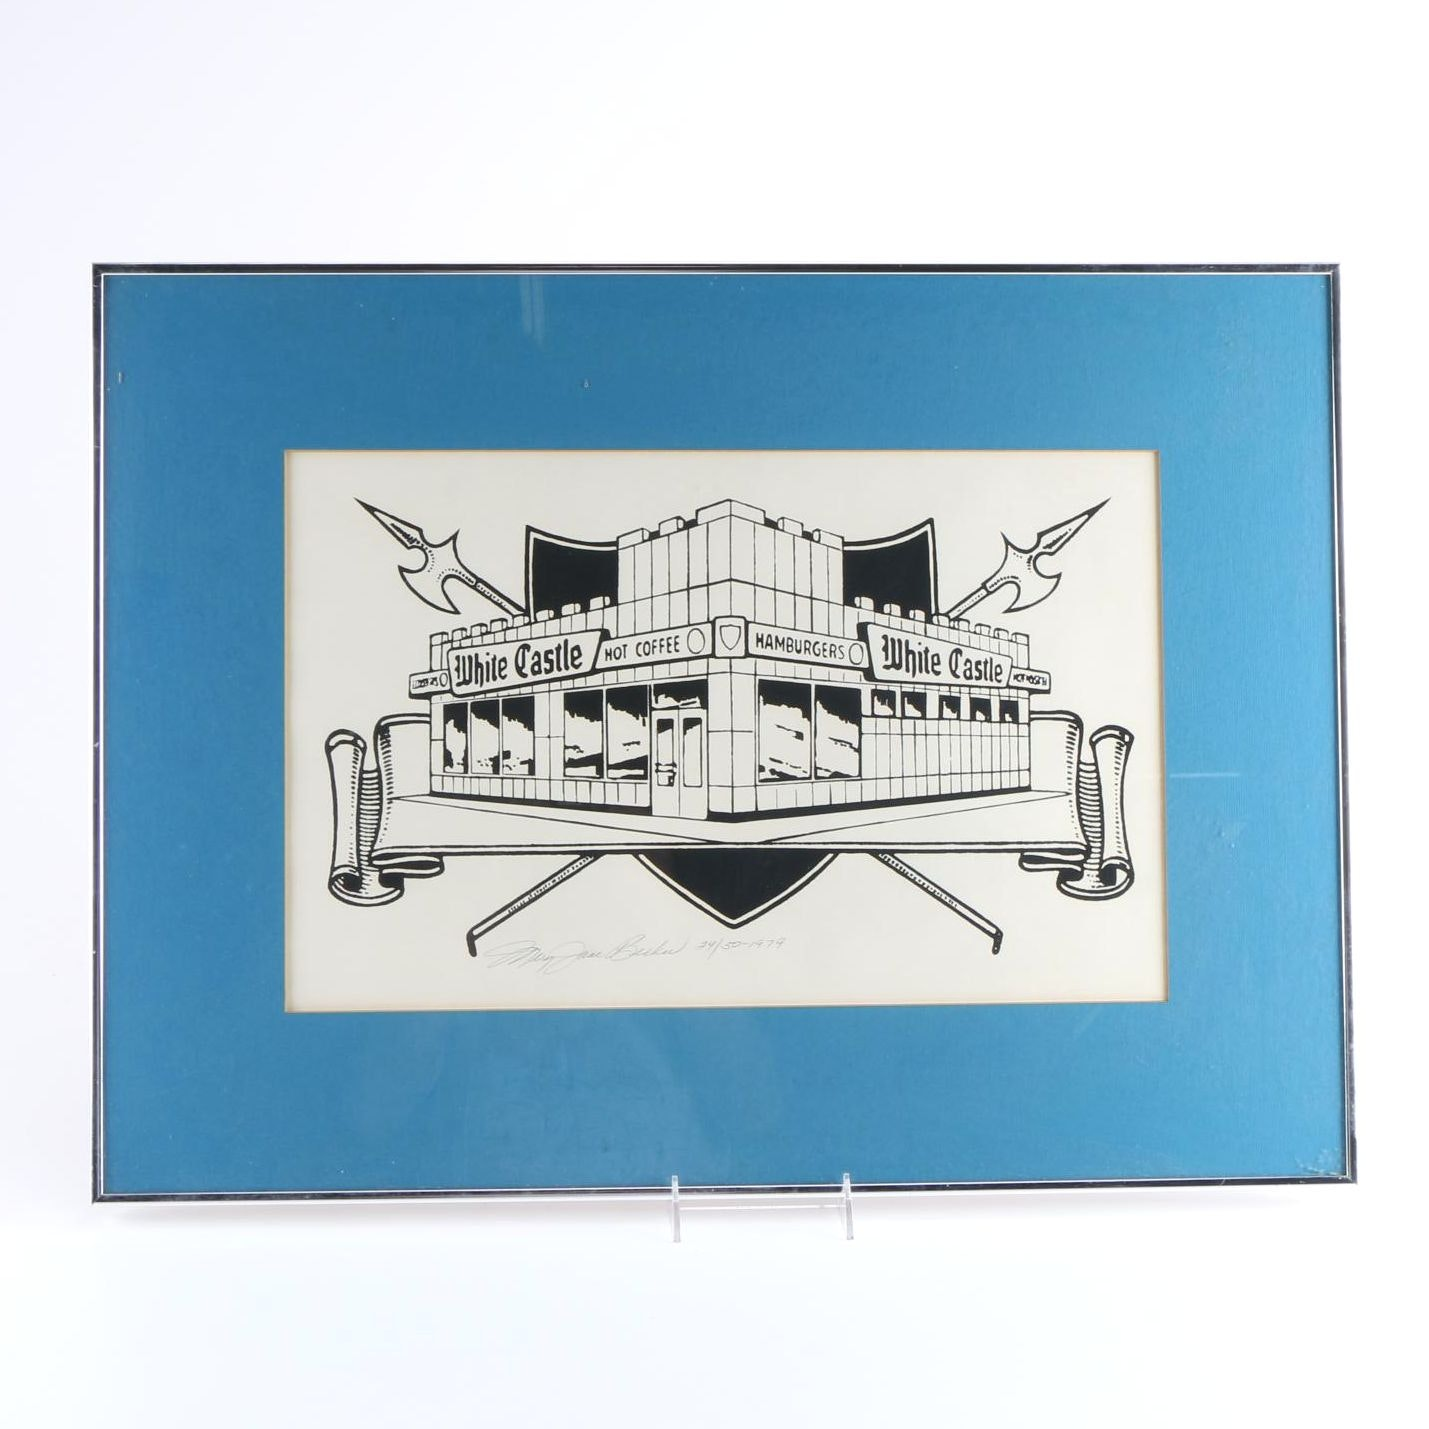 Mary Jane Becker Limited Edition Serigraph of White Castle